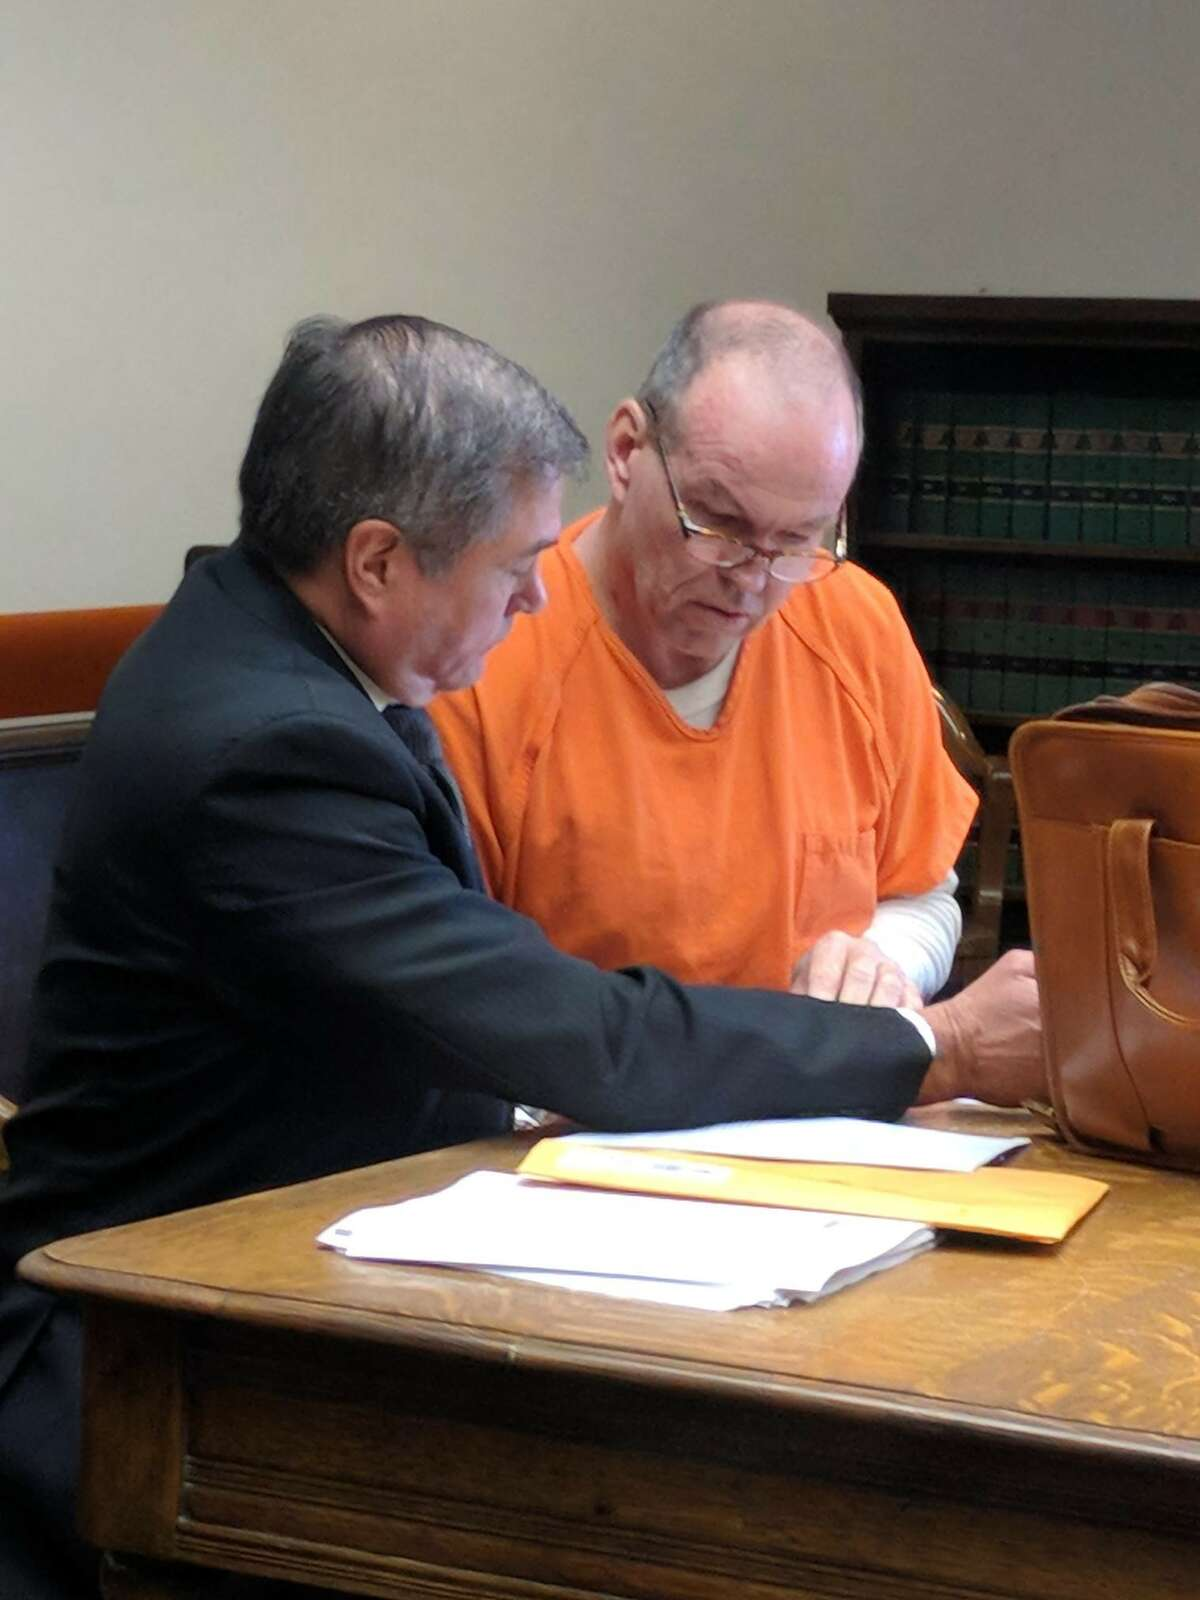 Greg Schirato, former deputy assistant director at the state Department of Fish and Wildlilfe, right, was sentenced to more than 10 years in prison Wednesday morning for breaking into the home of a co-worker in 2014 and raping her while she slept in her Olympia home. He signs documents after his sentencing with his attorney, Richard Woodrow.